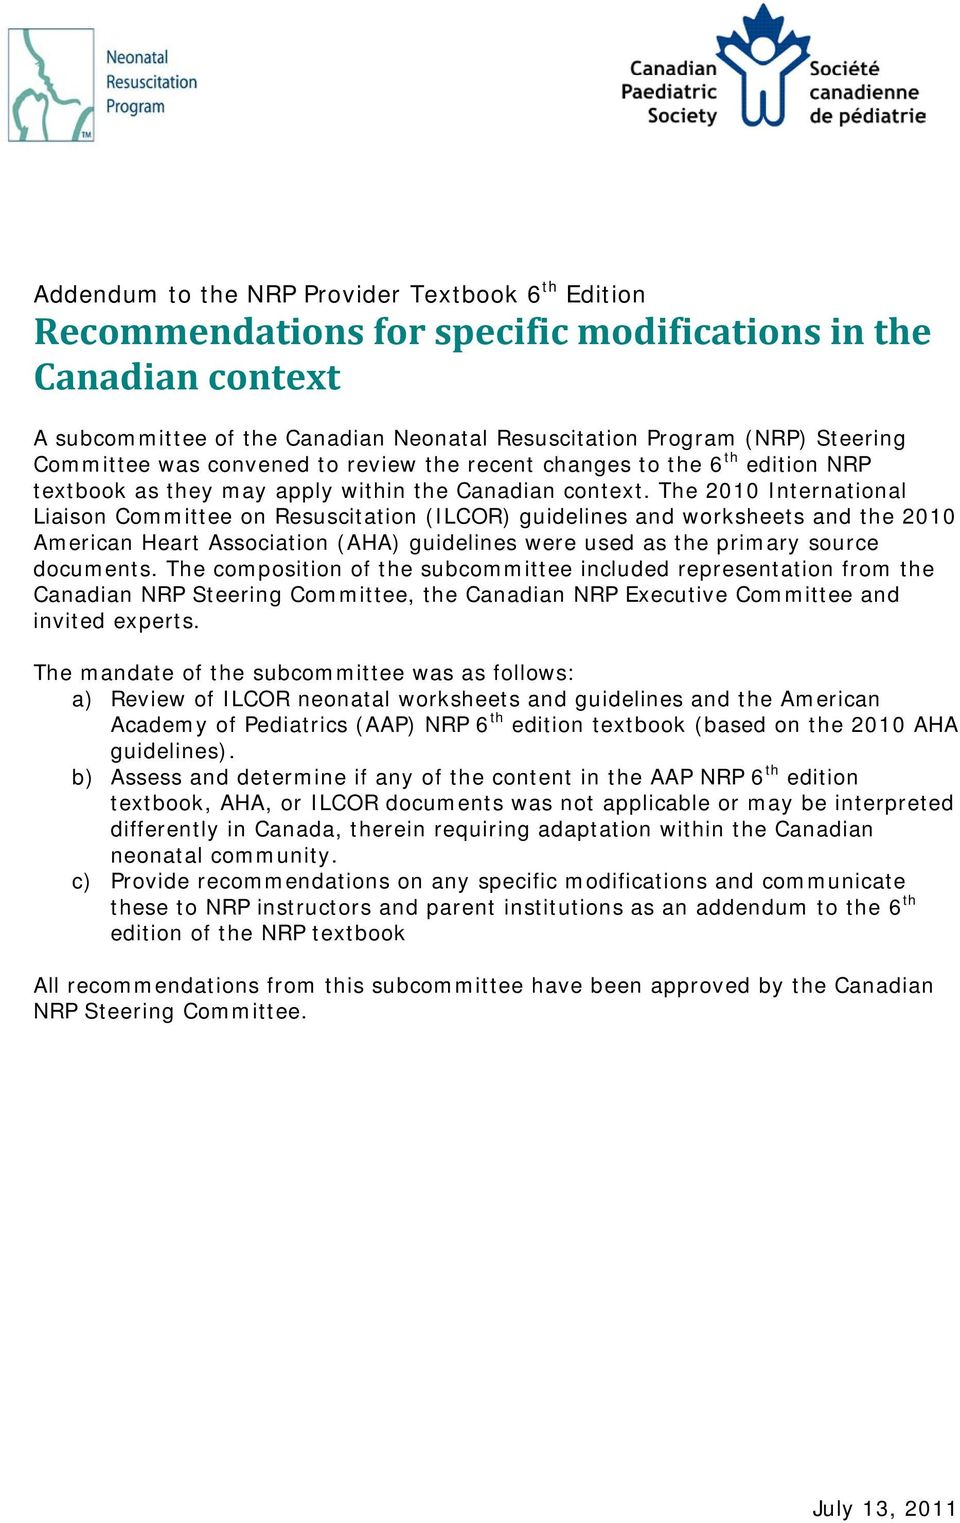 The 2010 International Liaison Committee on Resuscitation (ILCOR)  guidelines and worksheets and the 2010